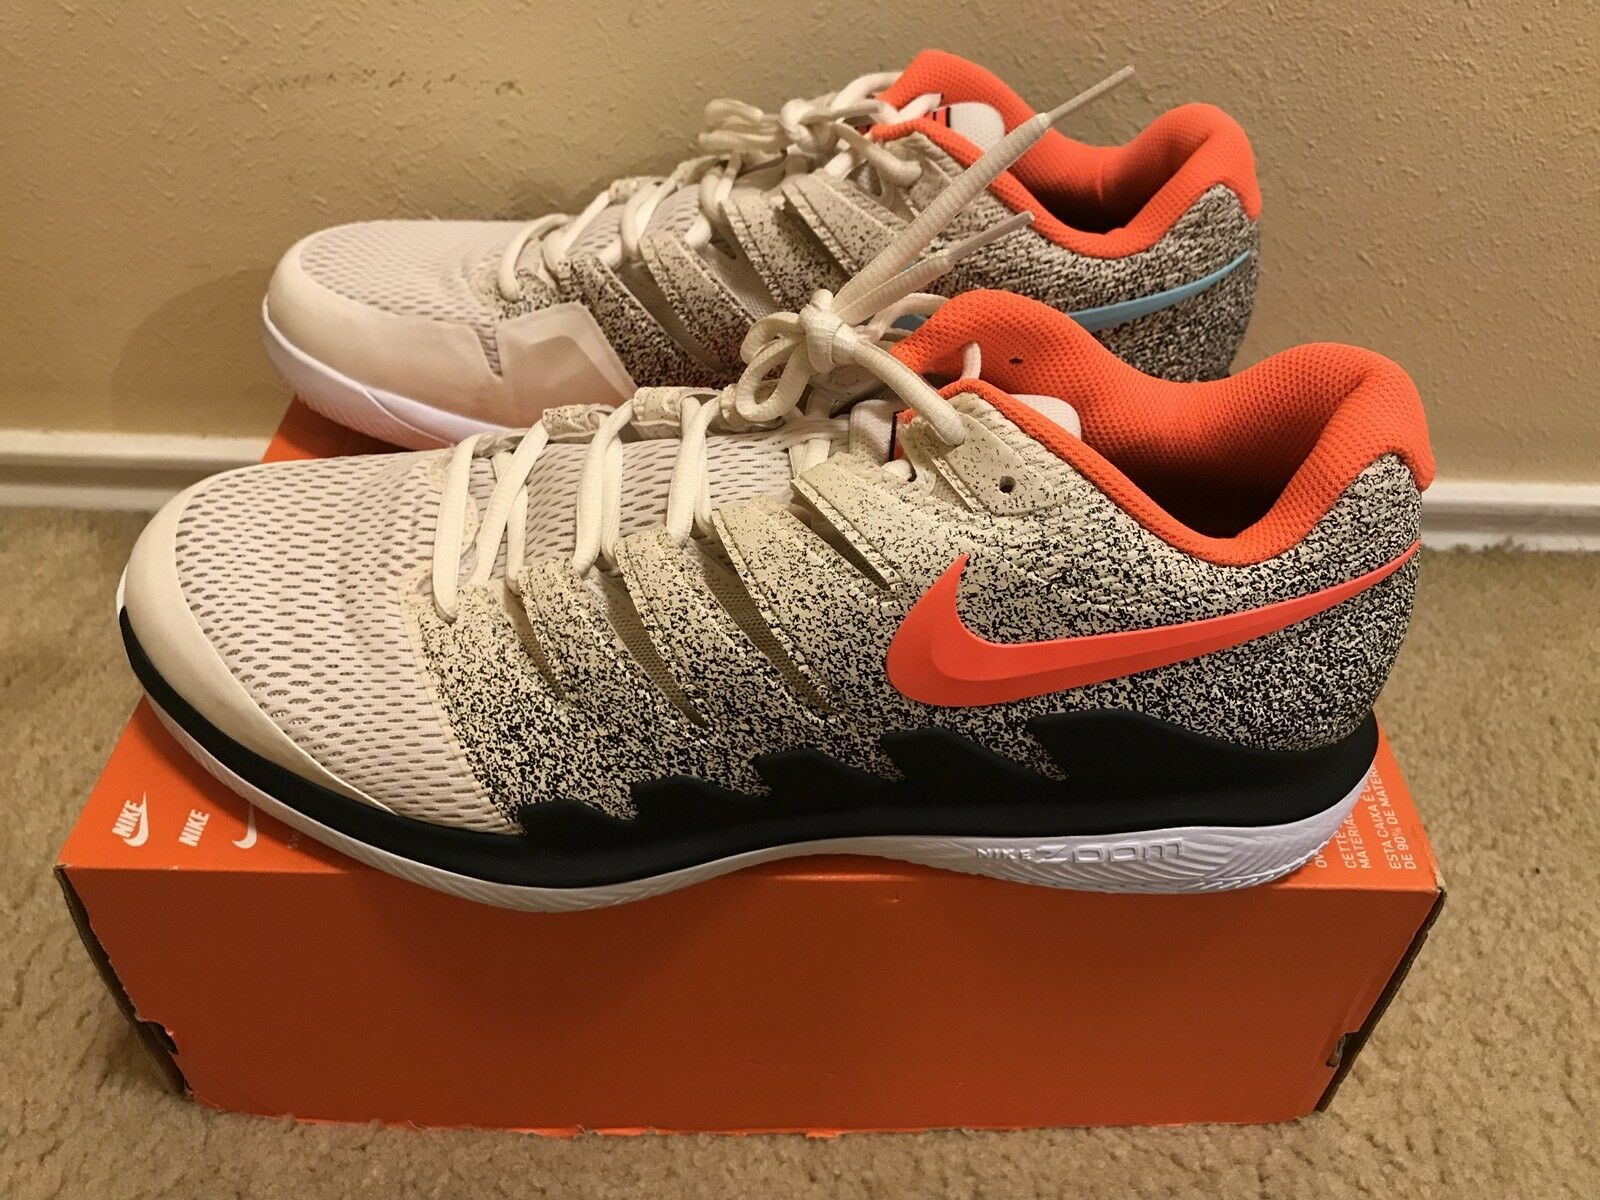 Nike Air Zoom Vapor X HC RF Roger Federer Men's Price reduction Comfortable and good-looking